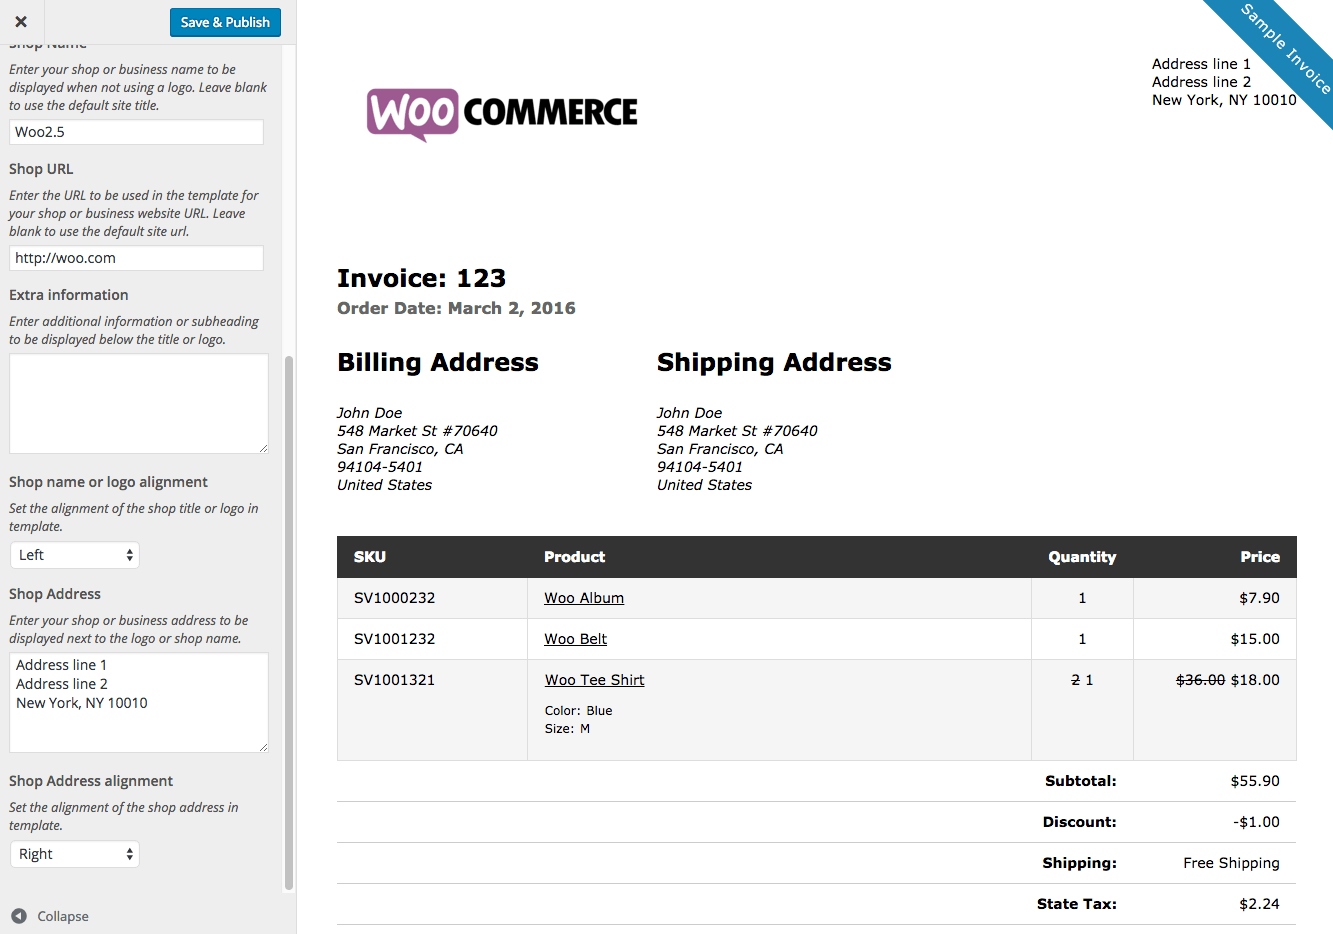 Reliefworkersus  Wonderful Woocommerce Print Invoices Amp Packing Lists  Woocommerce Docs With Remarkable Woocommerce Print Invoices  Packing Lists Customizer With Charming Invoice Google Doc Also Invoice Letter Template For Professional Services In Addition How To Calculate Invoice Price And Simple Invoice Sample As Well As Invoice For Word Additionally Twilight Princess Invoice From Docswoocommercecom With Reliefworkersus  Remarkable Woocommerce Print Invoices Amp Packing Lists  Woocommerce Docs With Charming Woocommerce Print Invoices  Packing Lists Customizer And Wonderful Invoice Google Doc Also Invoice Letter Template For Professional Services In Addition How To Calculate Invoice Price From Docswoocommercecom